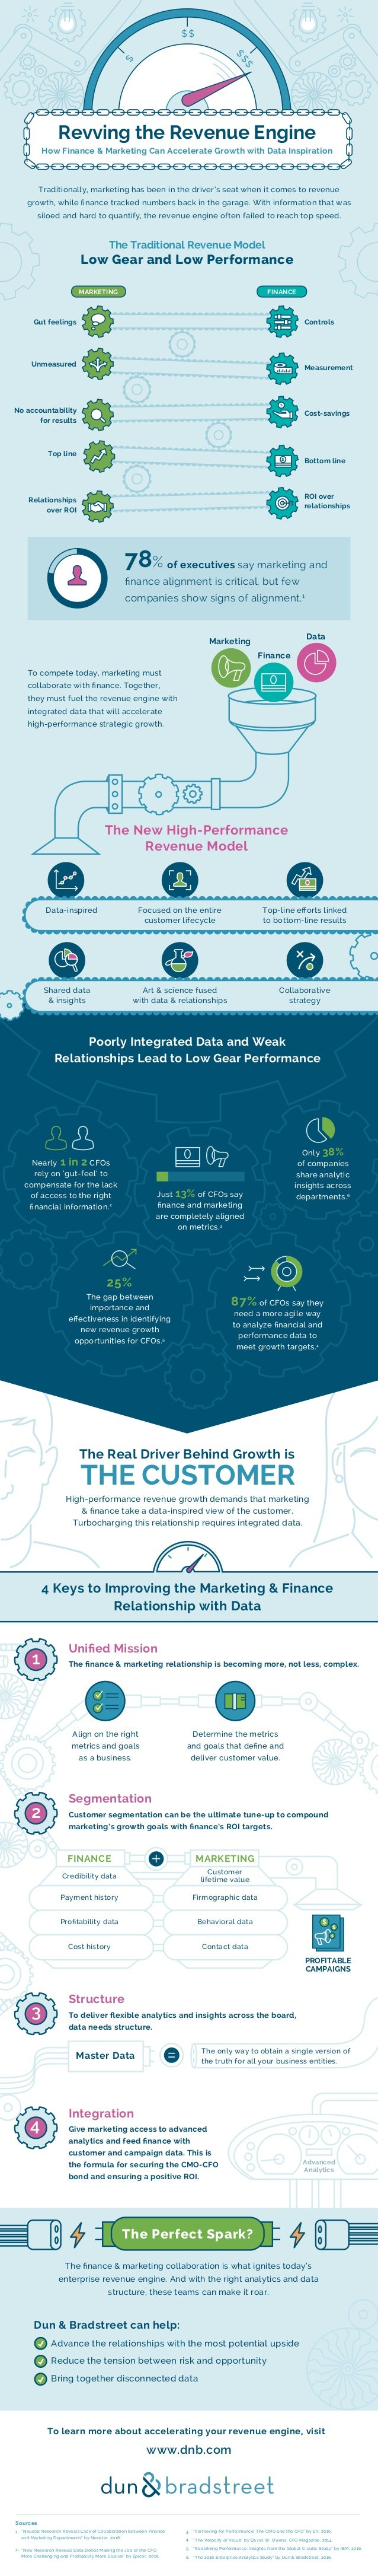 $ $$ $$ $ Revving the Revenue Engine How Finance & Marketing Can Accelerate Growth with Data Inspiration Traditionally, ma...